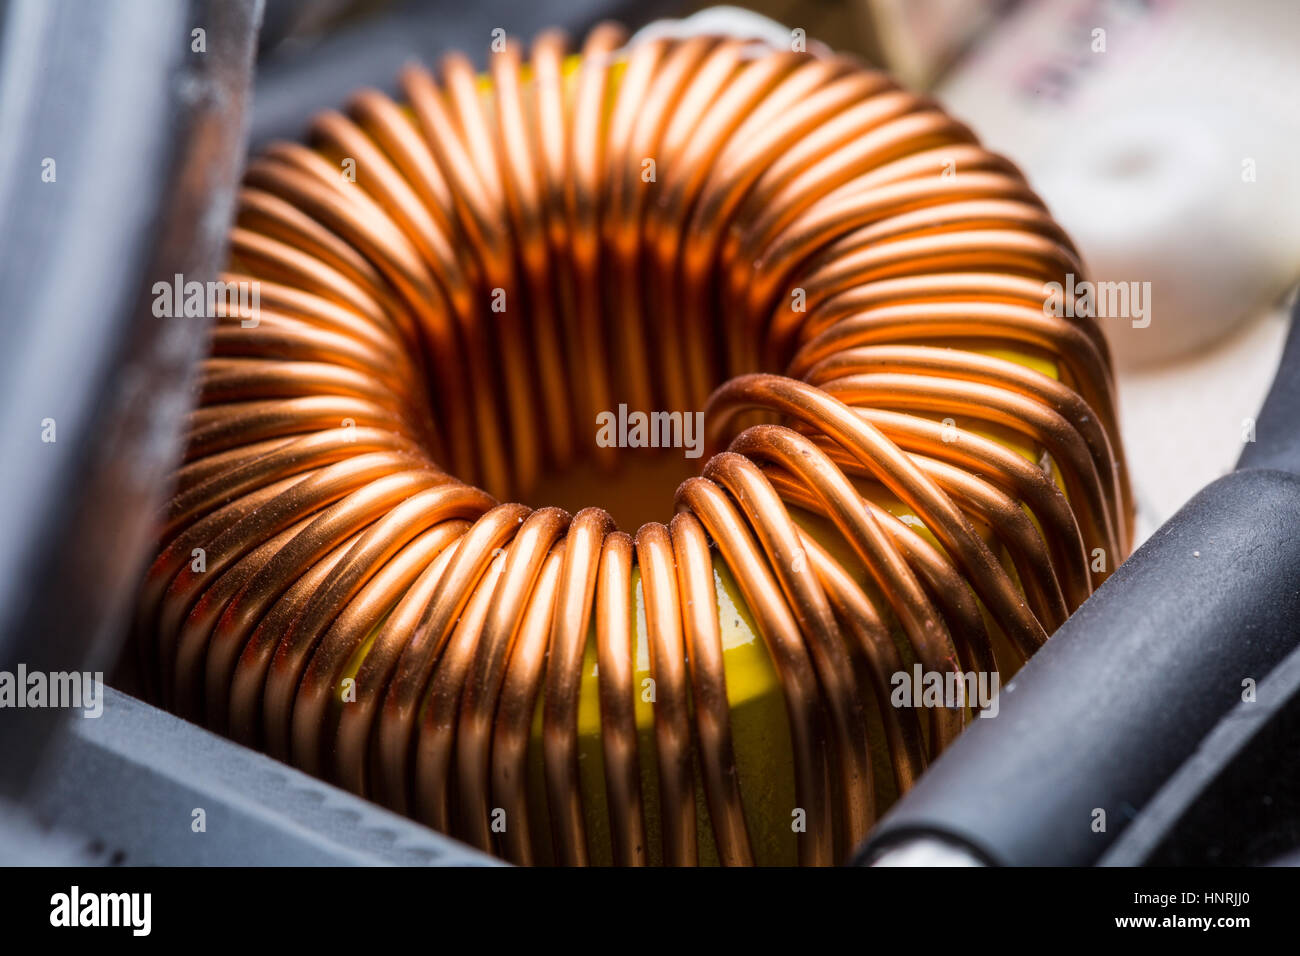 Copper Coil Stock Photos & Copper Coil Stock Images - Alamy